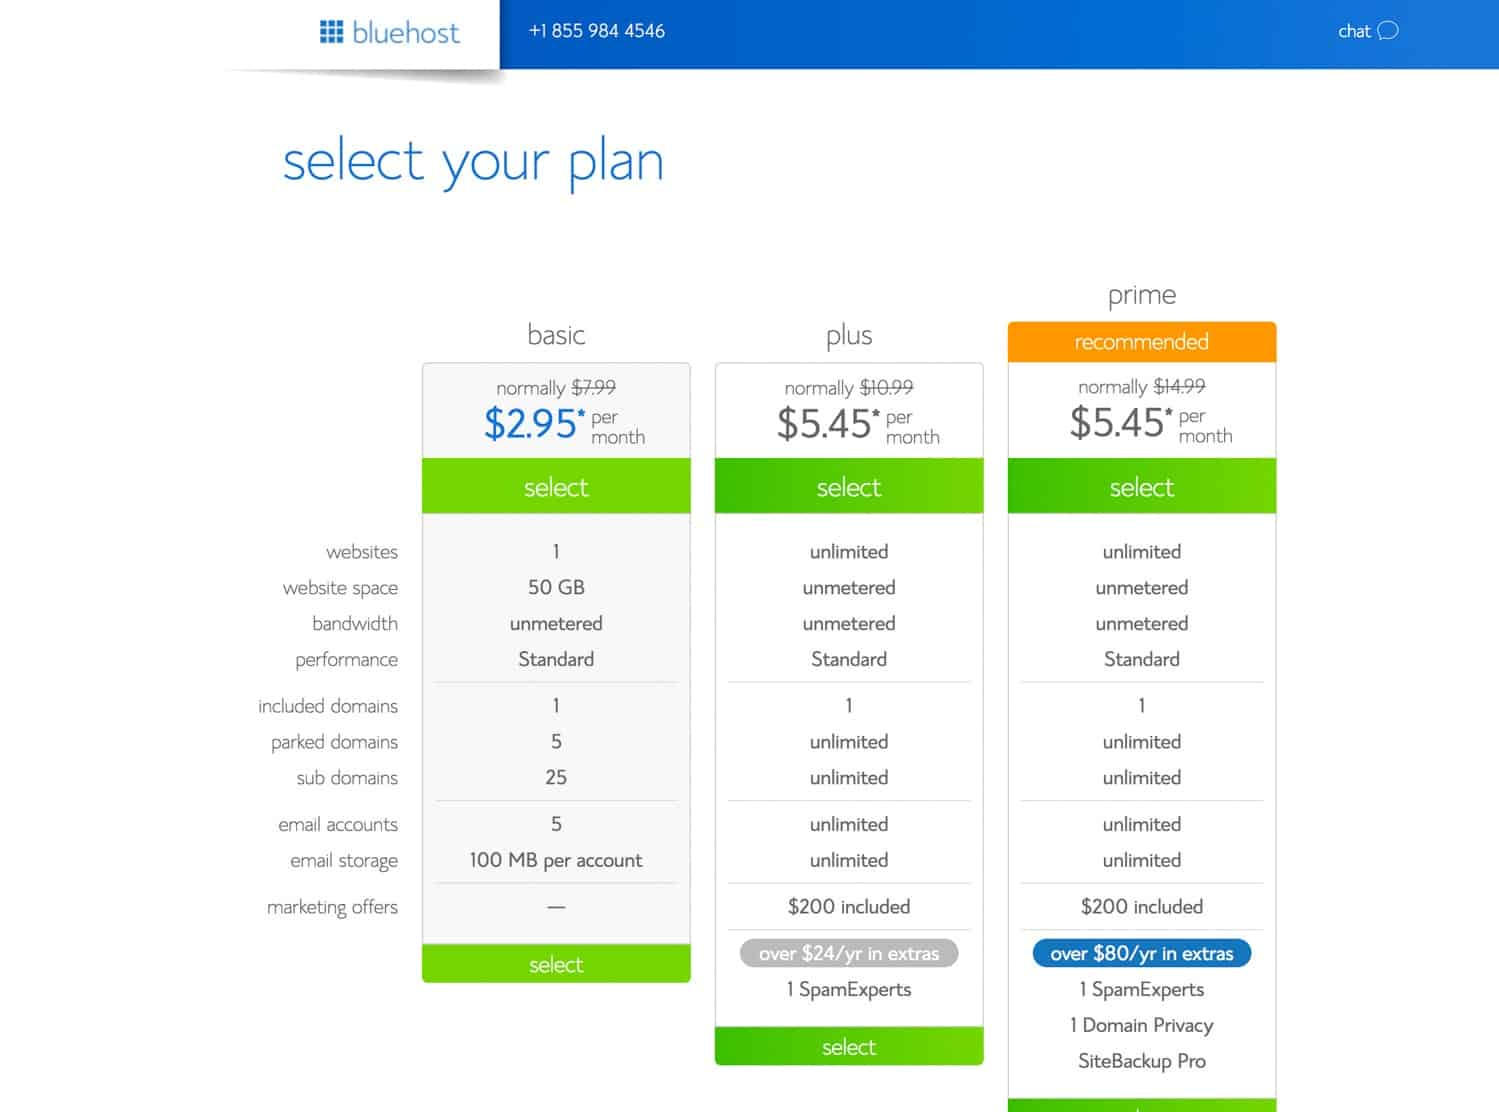 Bluehost plan selection for promo pricing